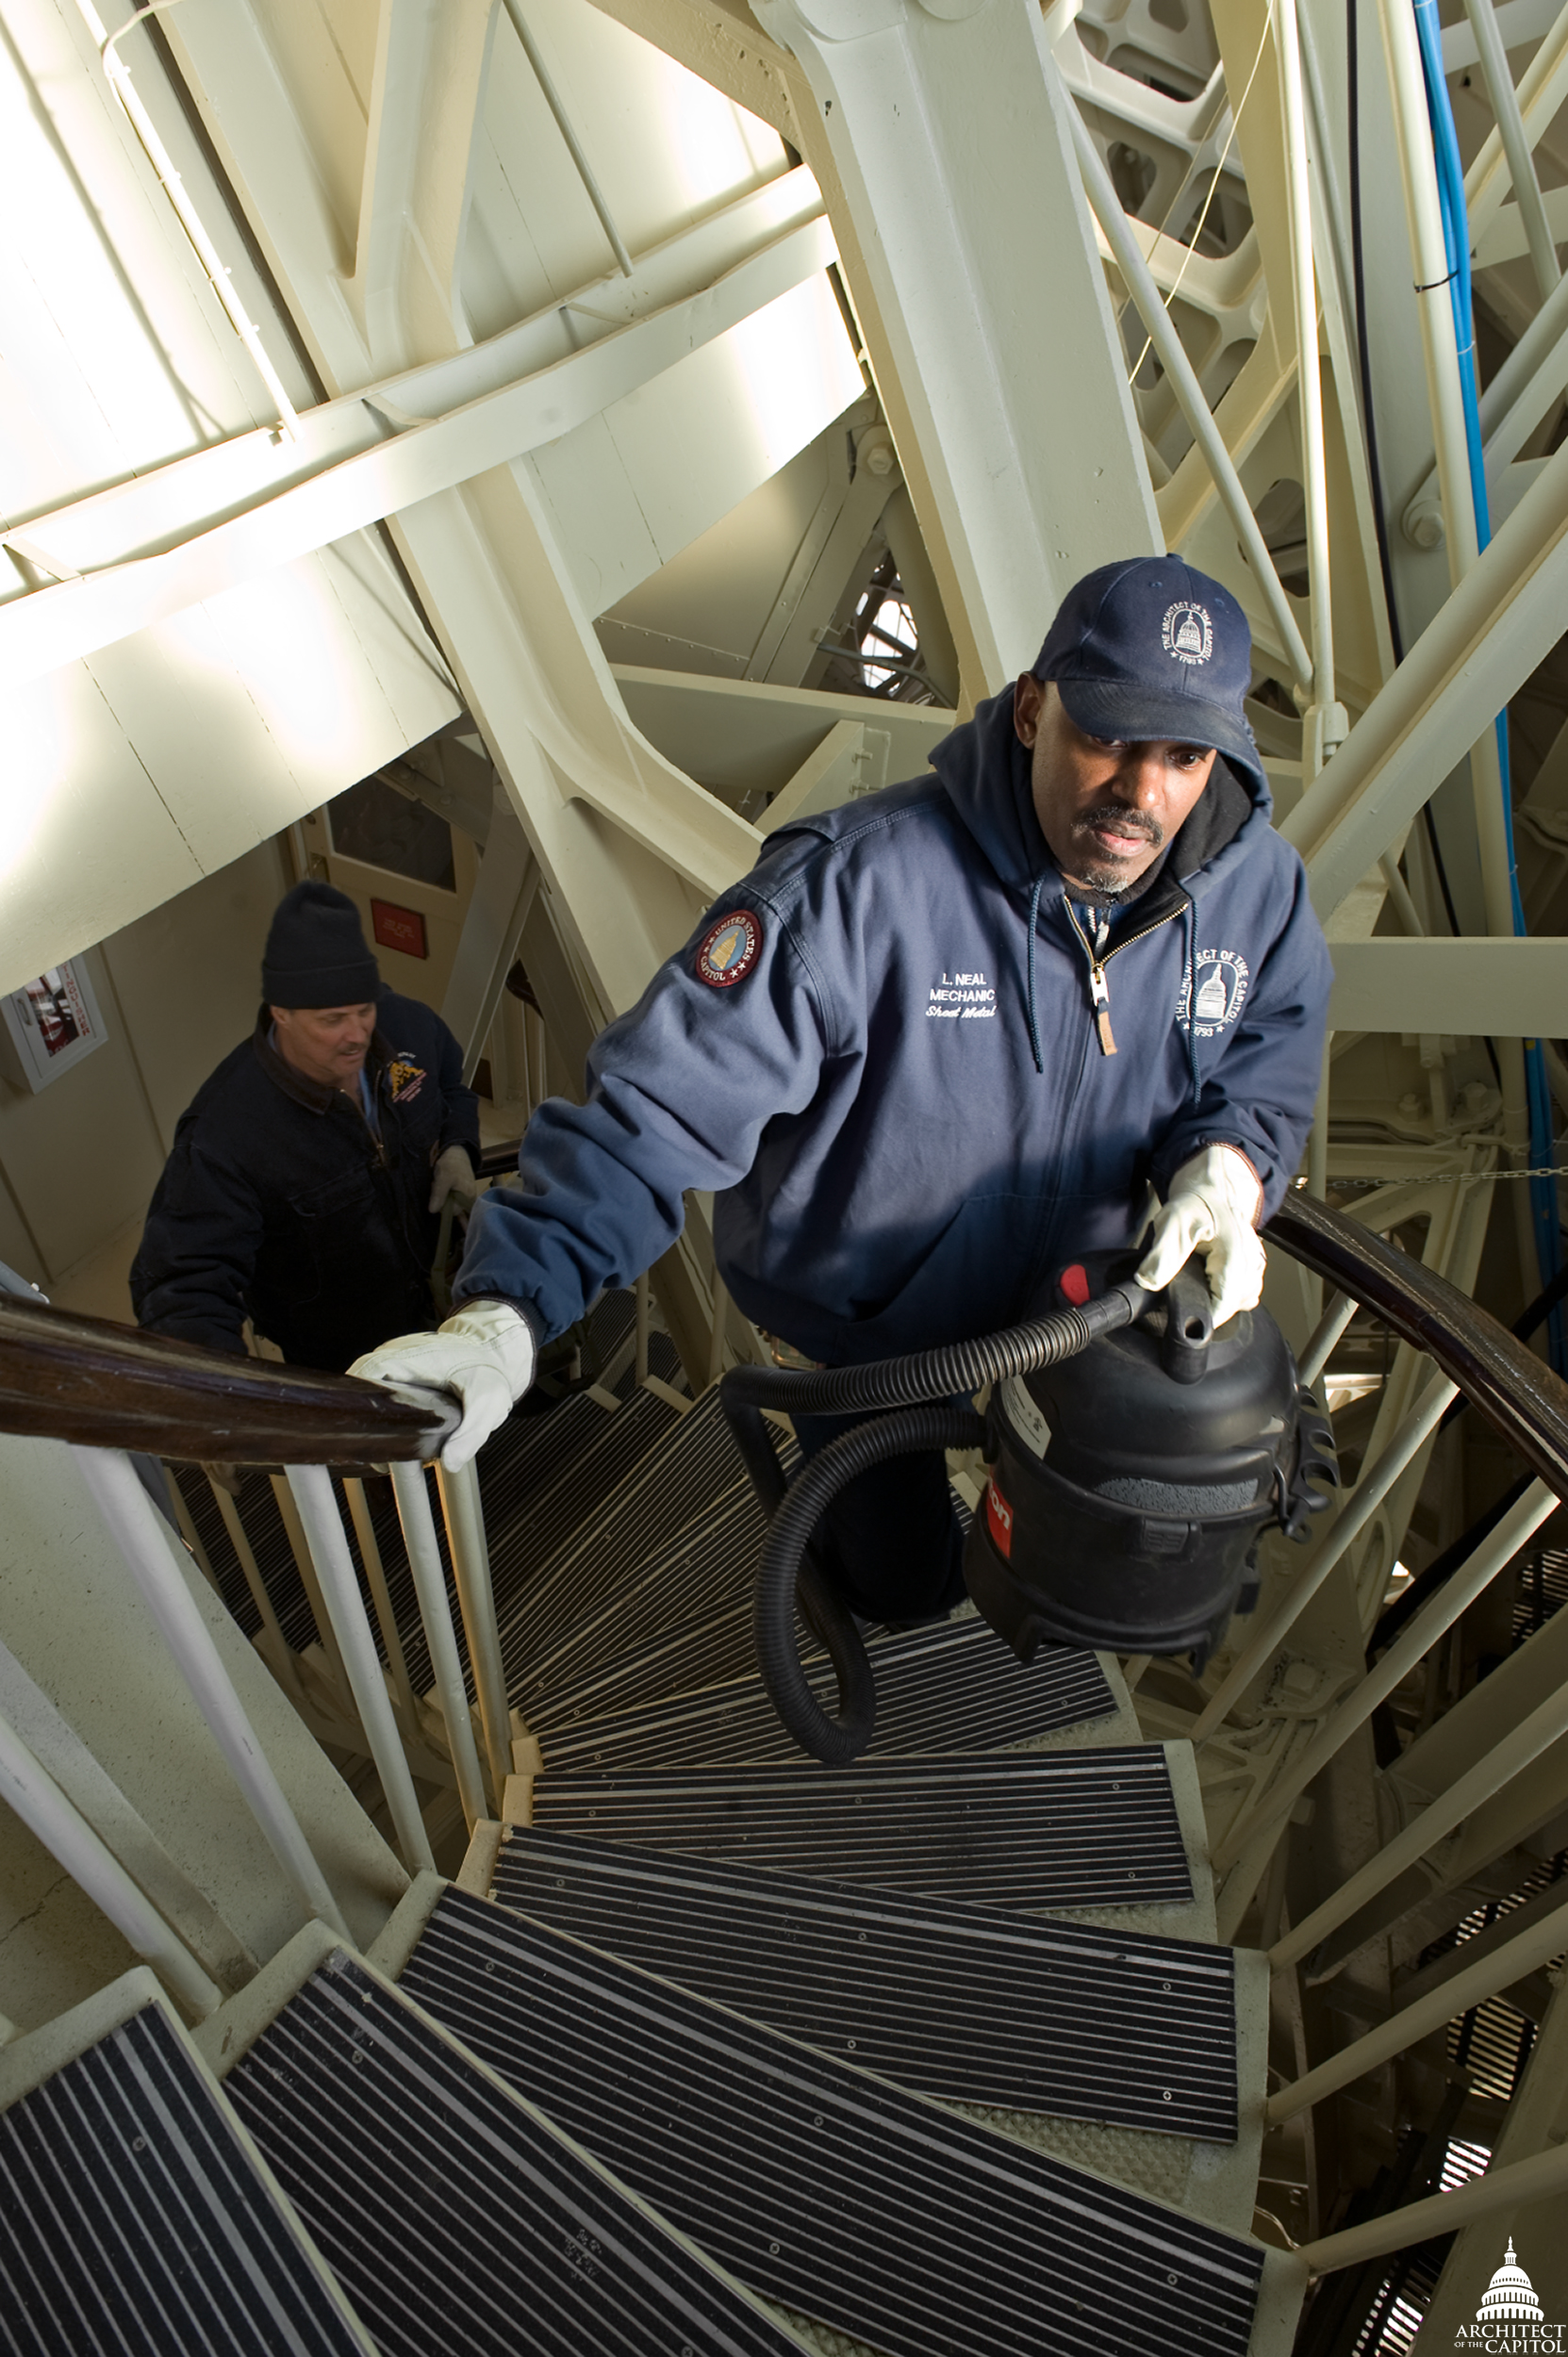 Stair stepper—making the climb up the 365 steps to the top of the Capitol is no easy feat especially when carrying equipment.